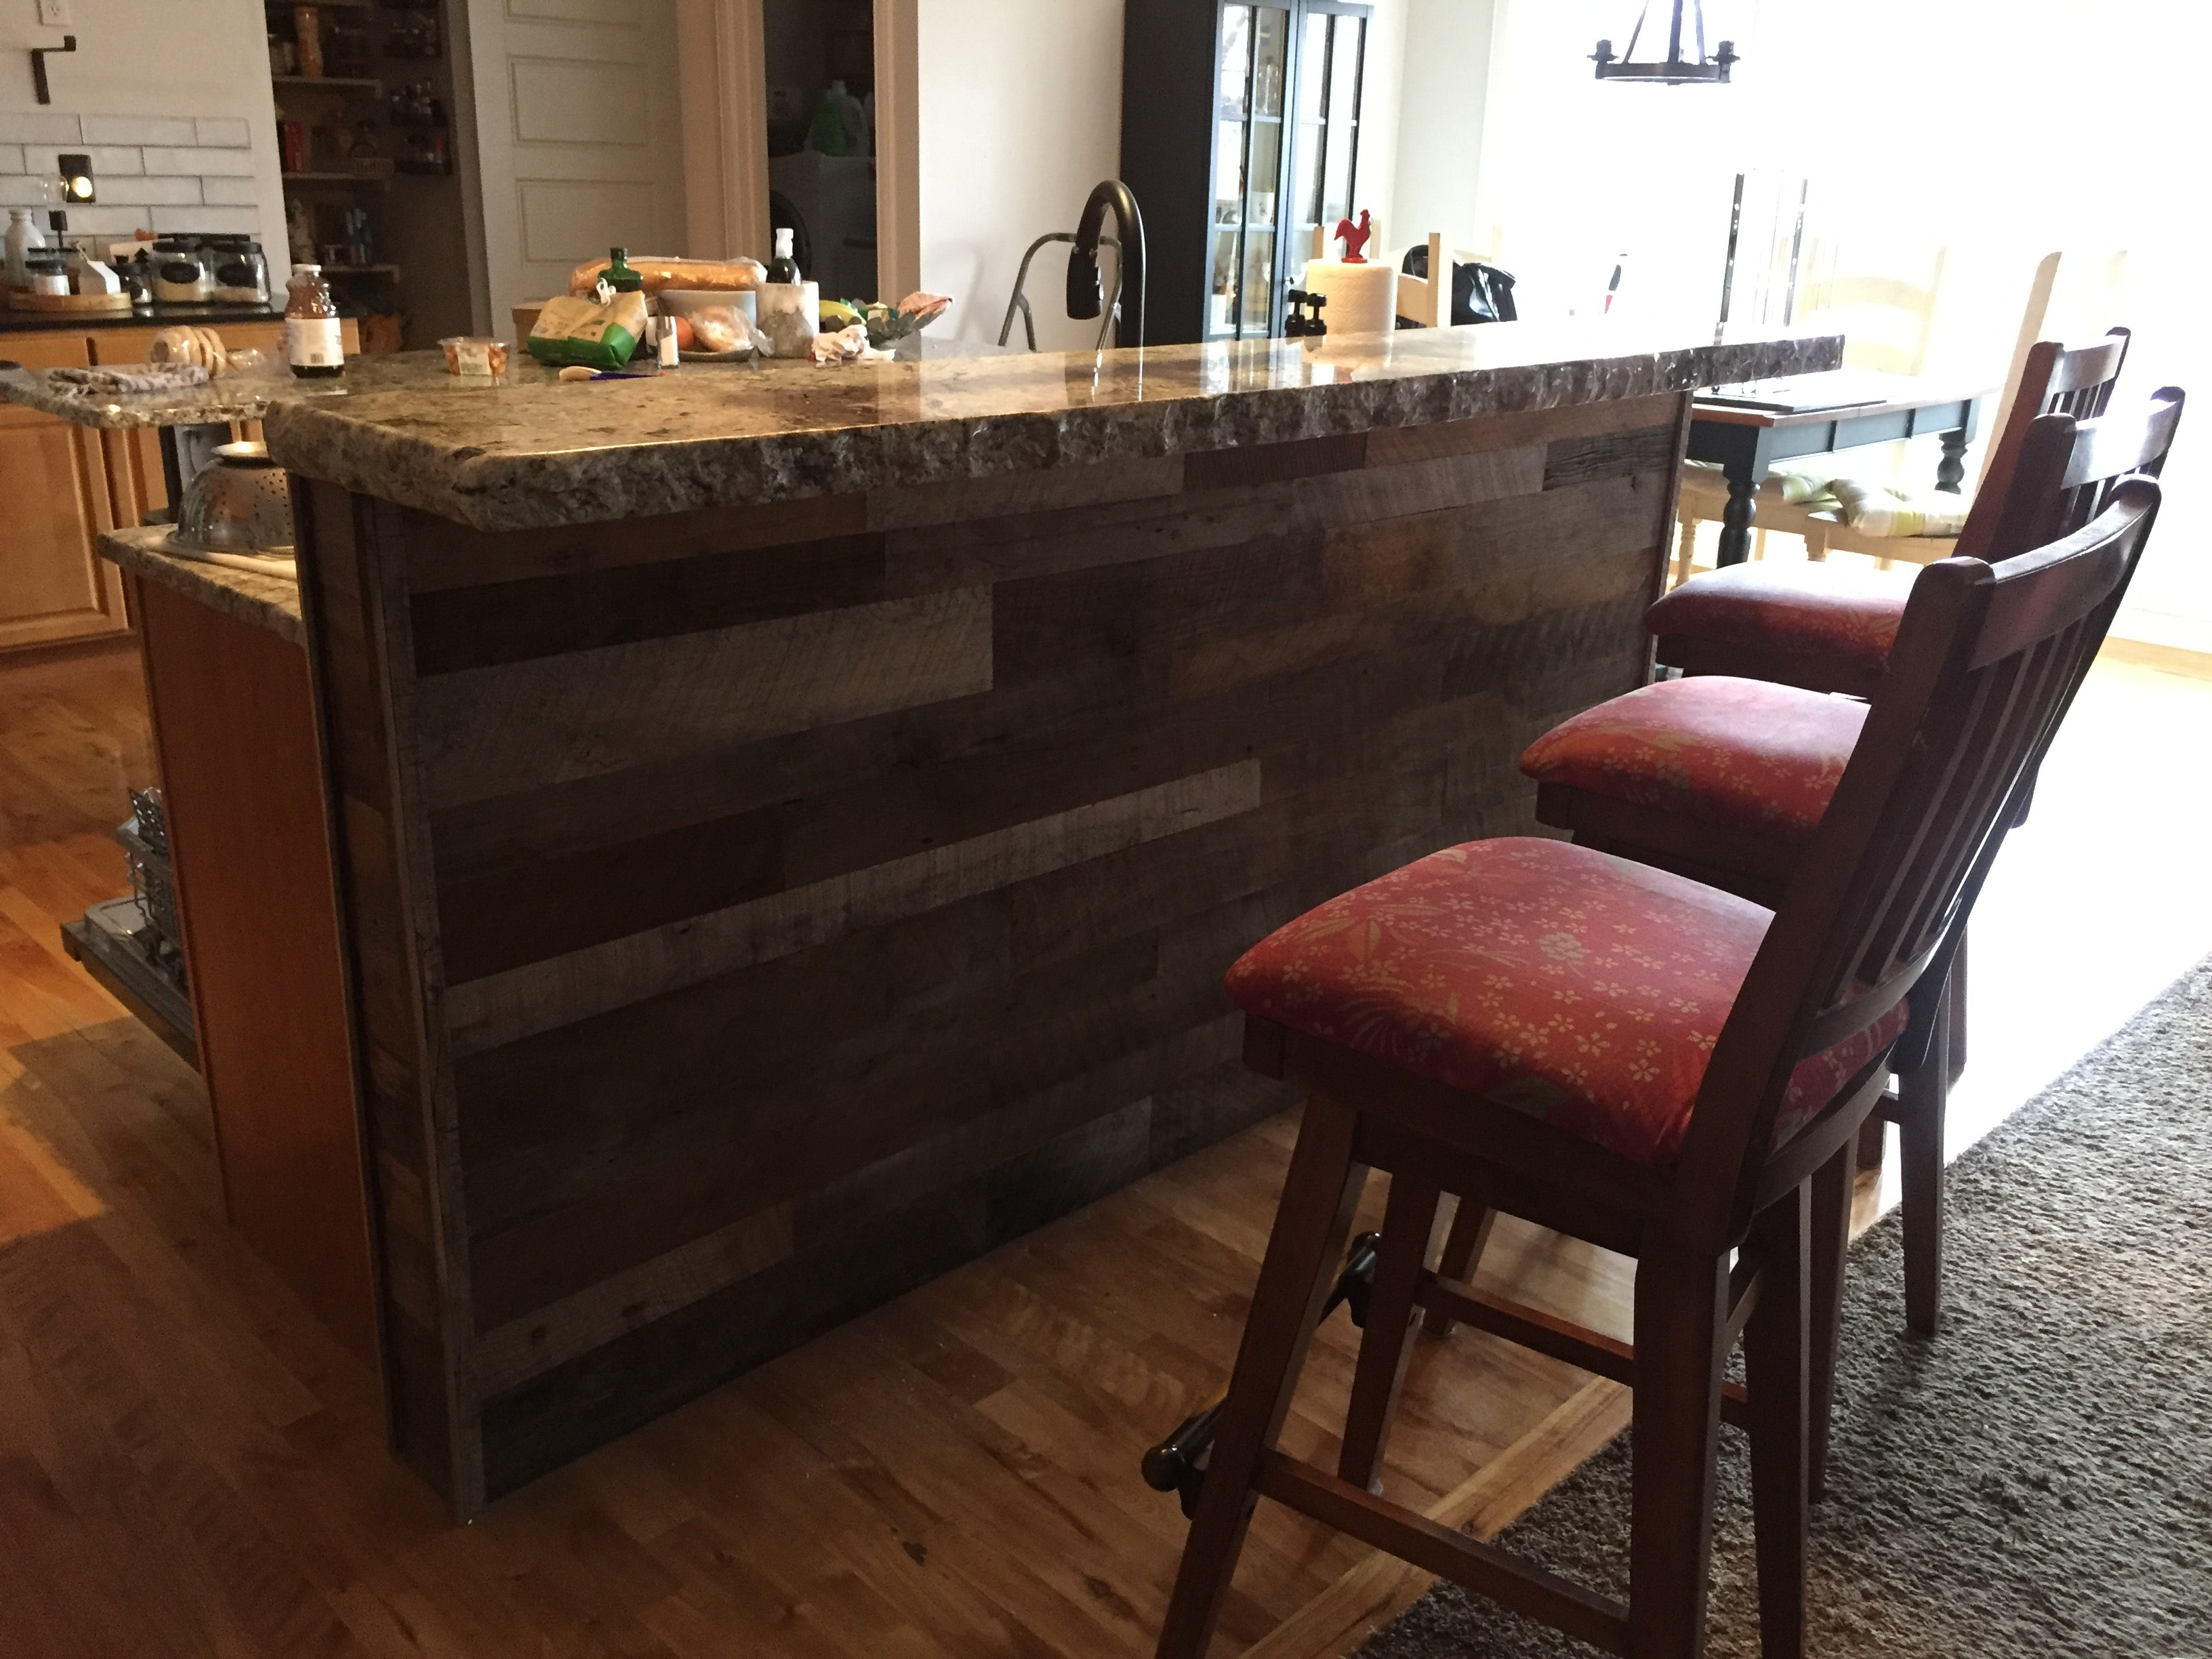 Reclaimed Wall Board Brown/Grey Mix - Reclaimed Direct  Reclaimed Wall Board Brown/Grey Mix, Reclaimed Wood